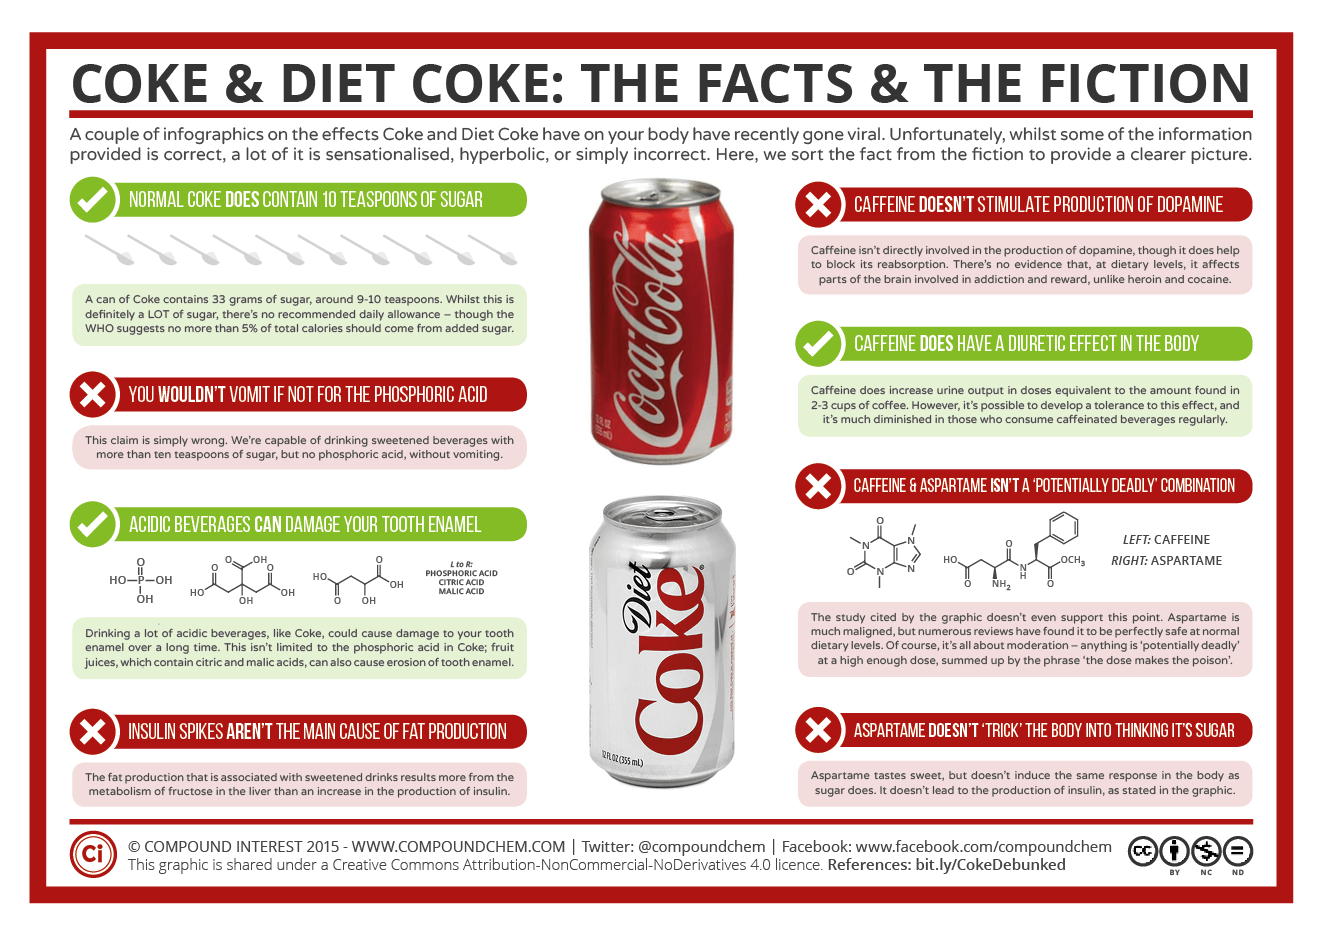 does diet coke contain phosphate?